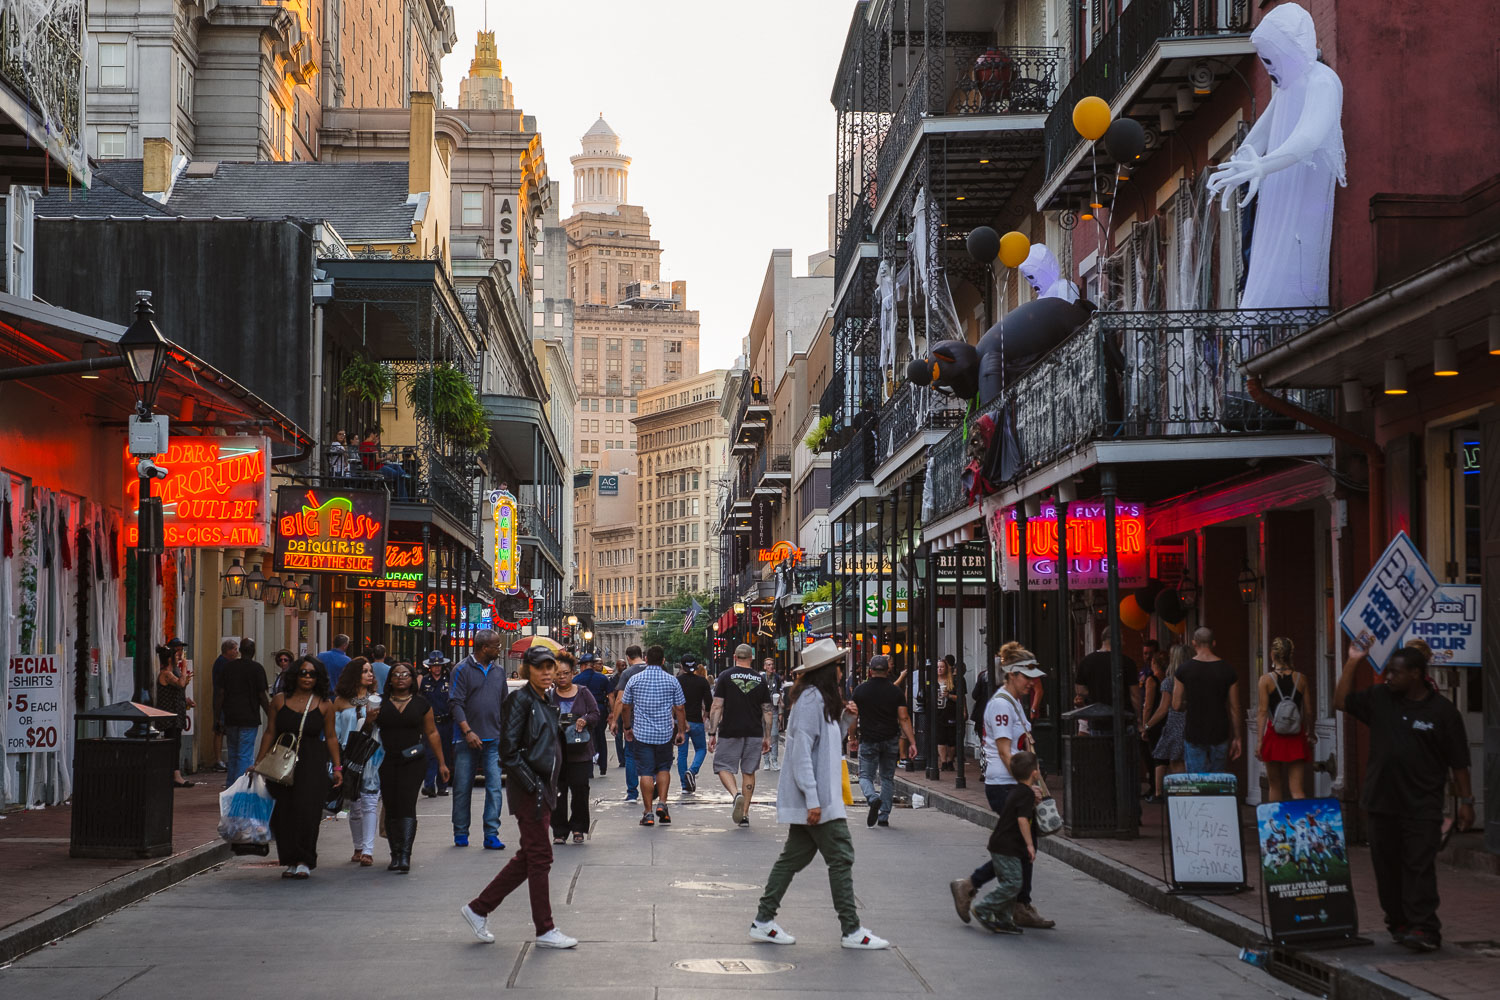 """Golden Hour on Bourbon Street - Travel photography and guide by © Natasha Lequepeys for """"And Then I Met Yoko"""". #neworleans #nola #photoblog #streetphotography #travelitinerary #fujifilm"""